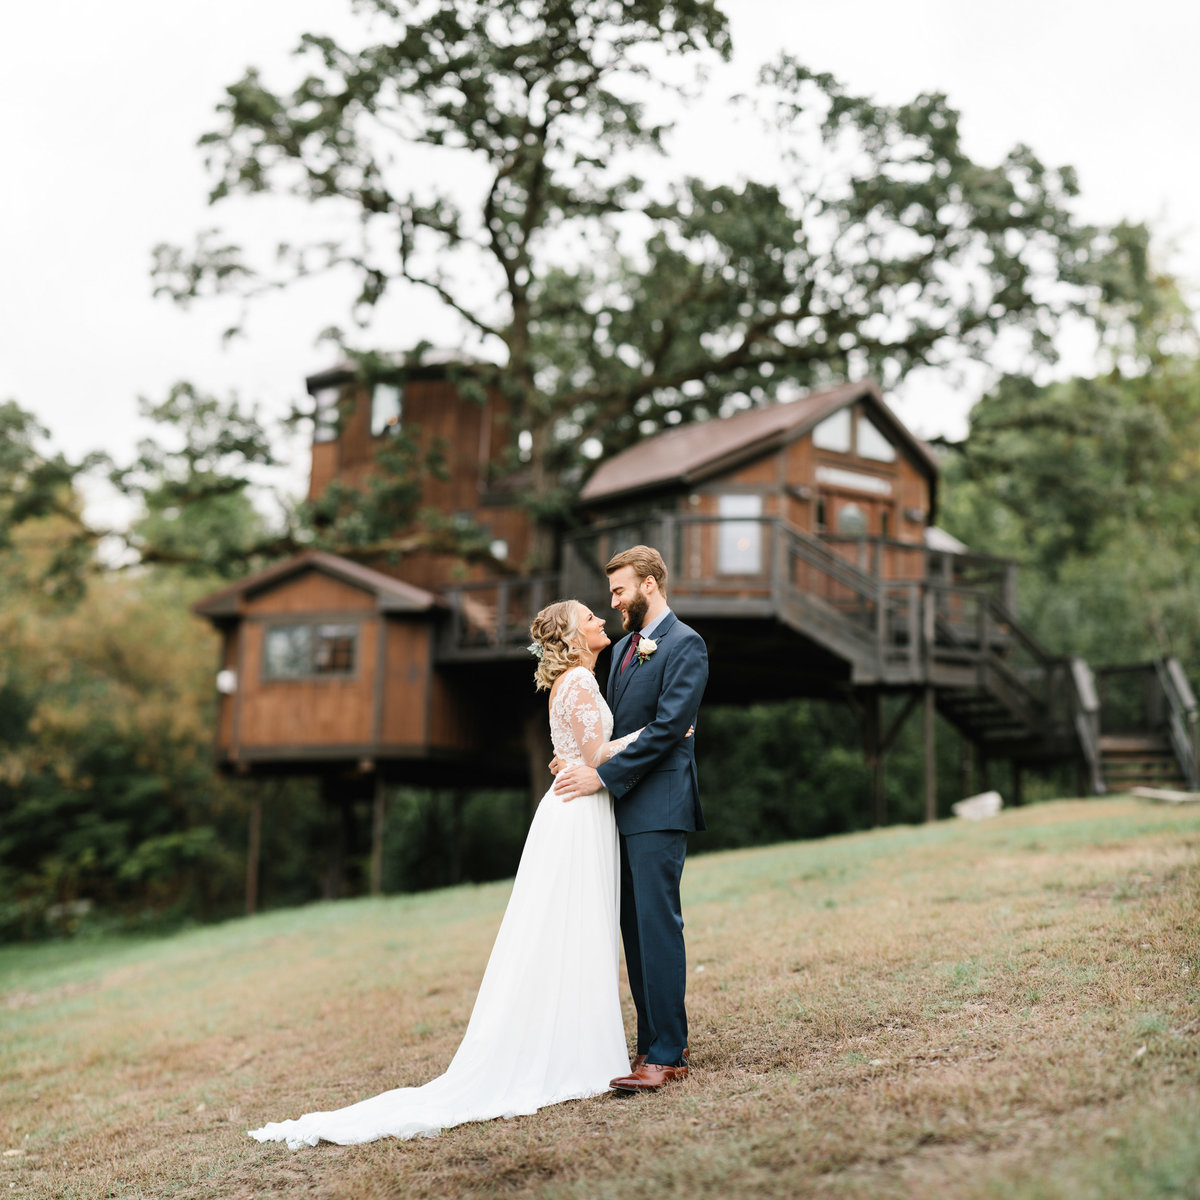 Hope-Glen-Farm-Cottage-Grove-Minnesota-September-Fall-Wedding-23